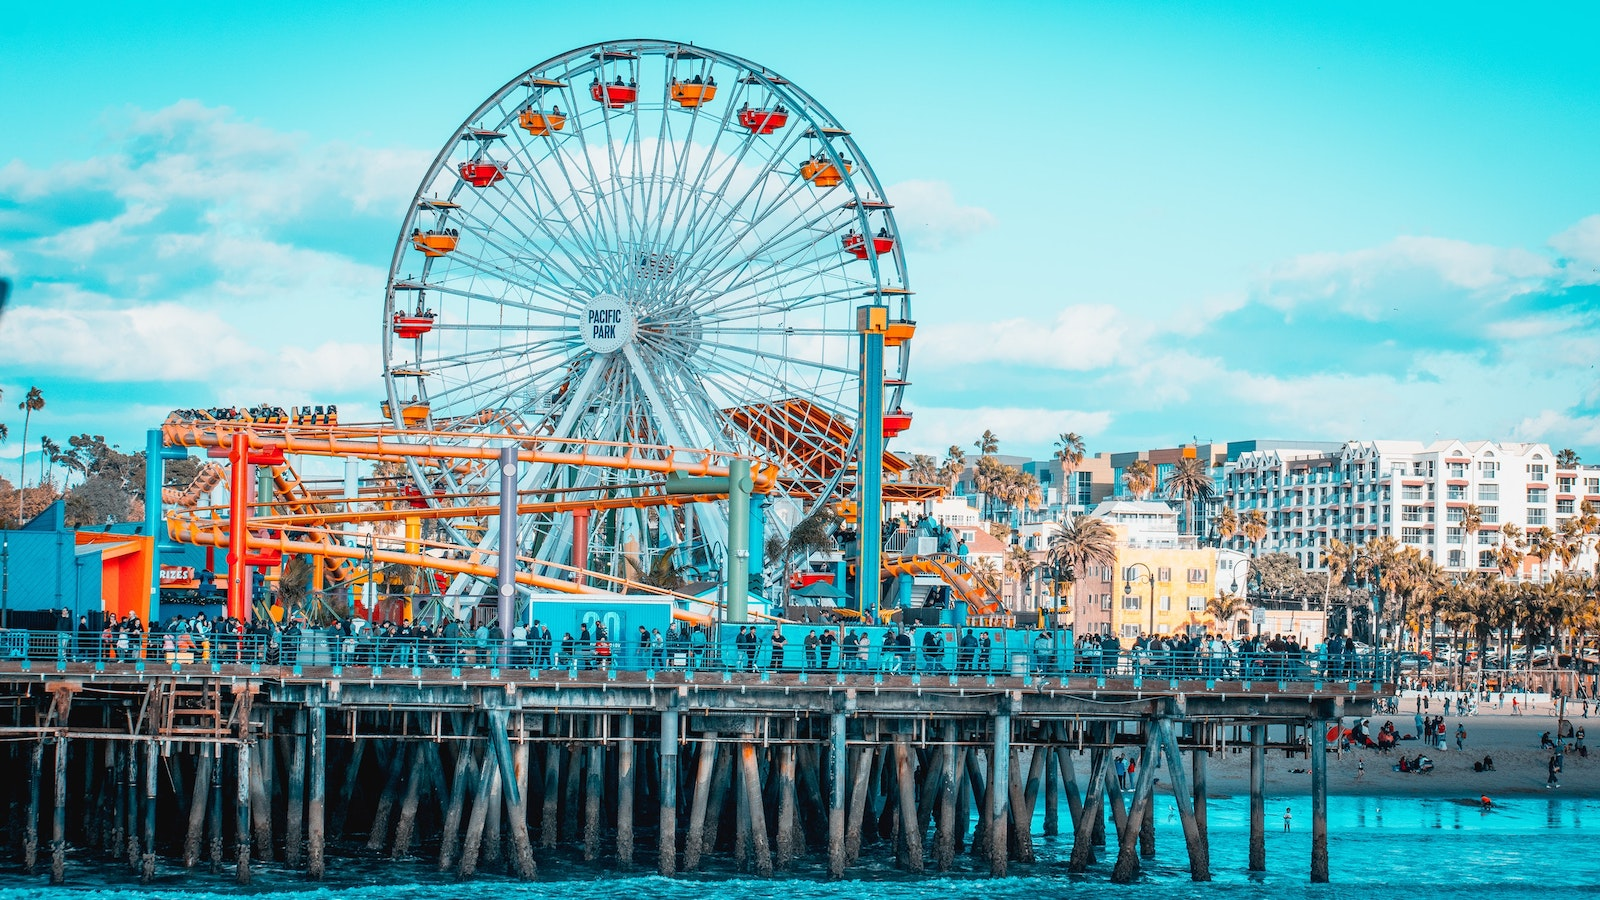 Rides on the Santa Monica Pier